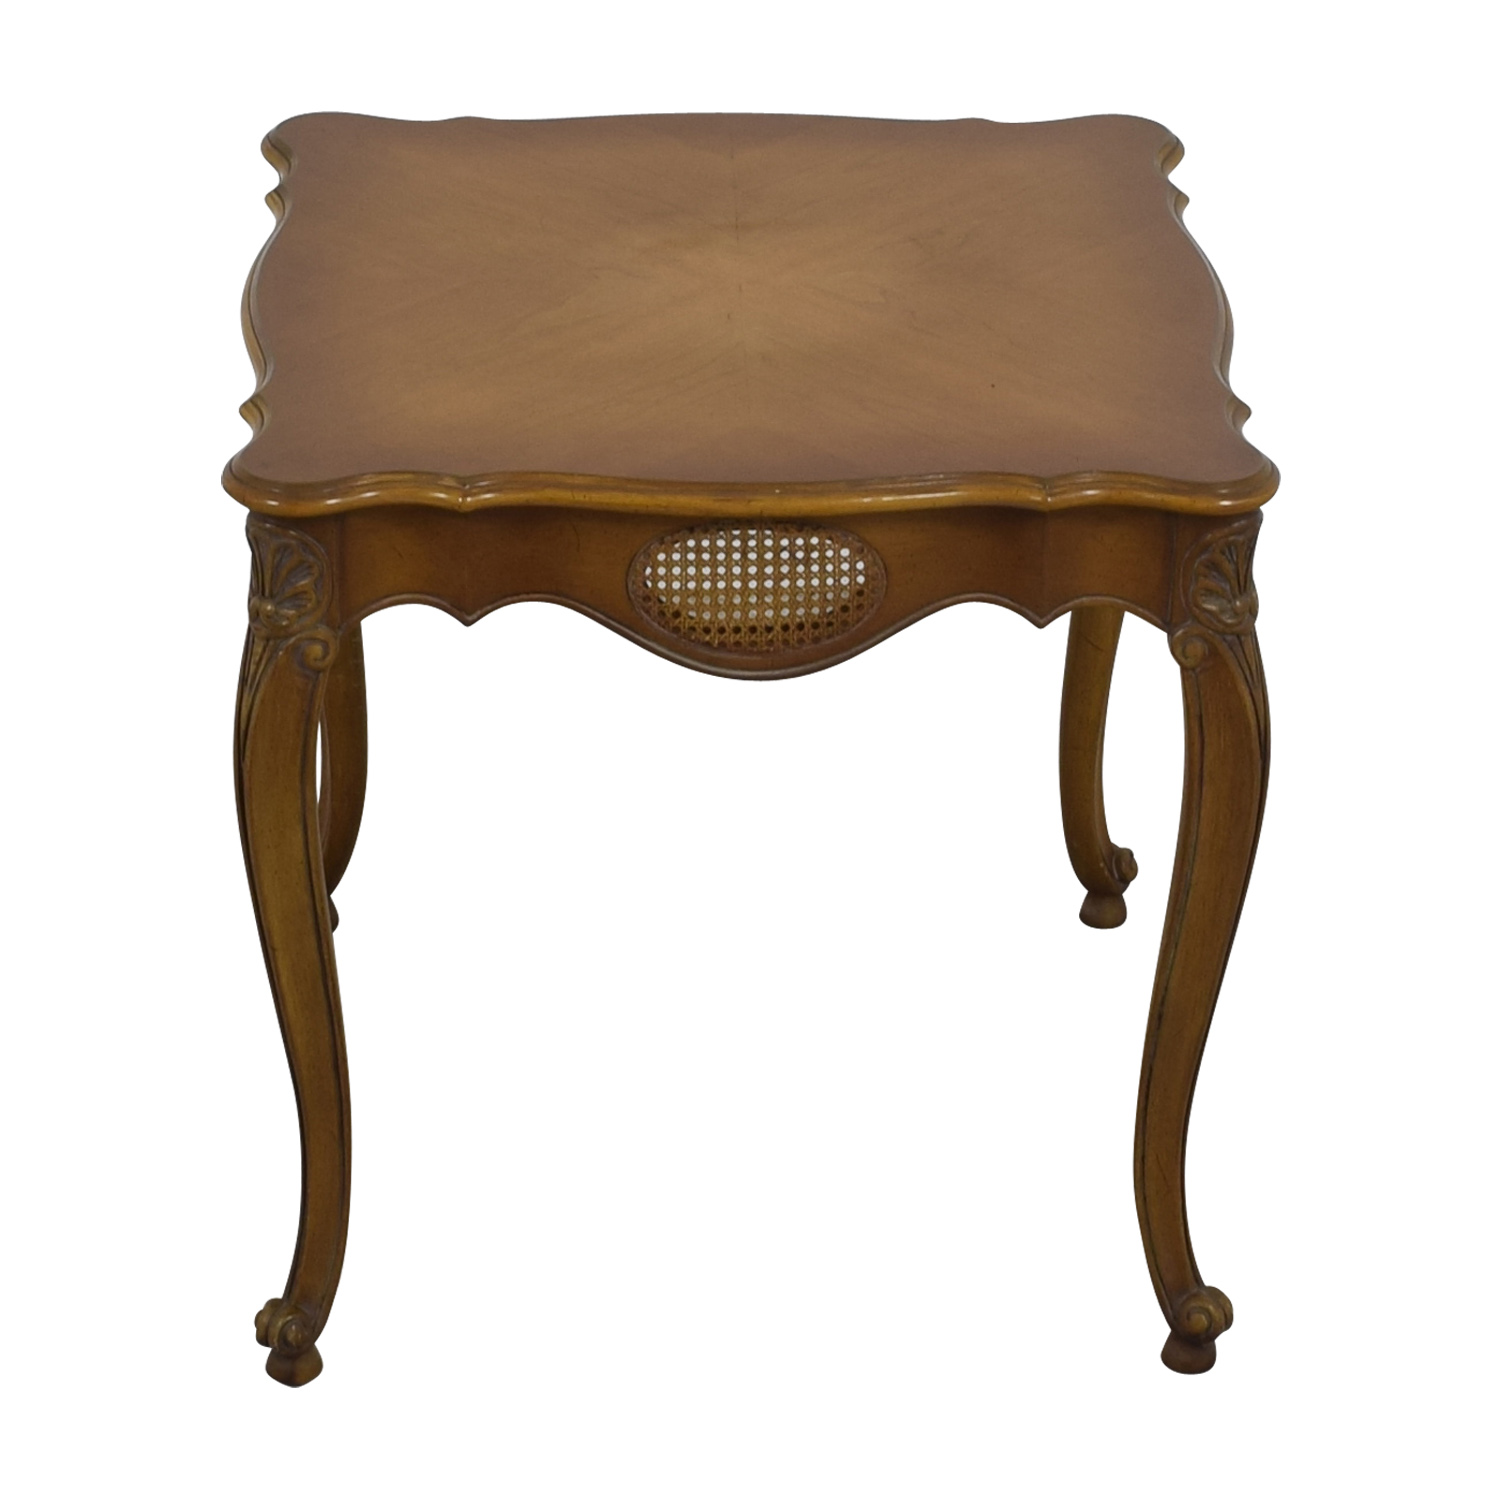 Vintage French Provincial End Table / End Tables